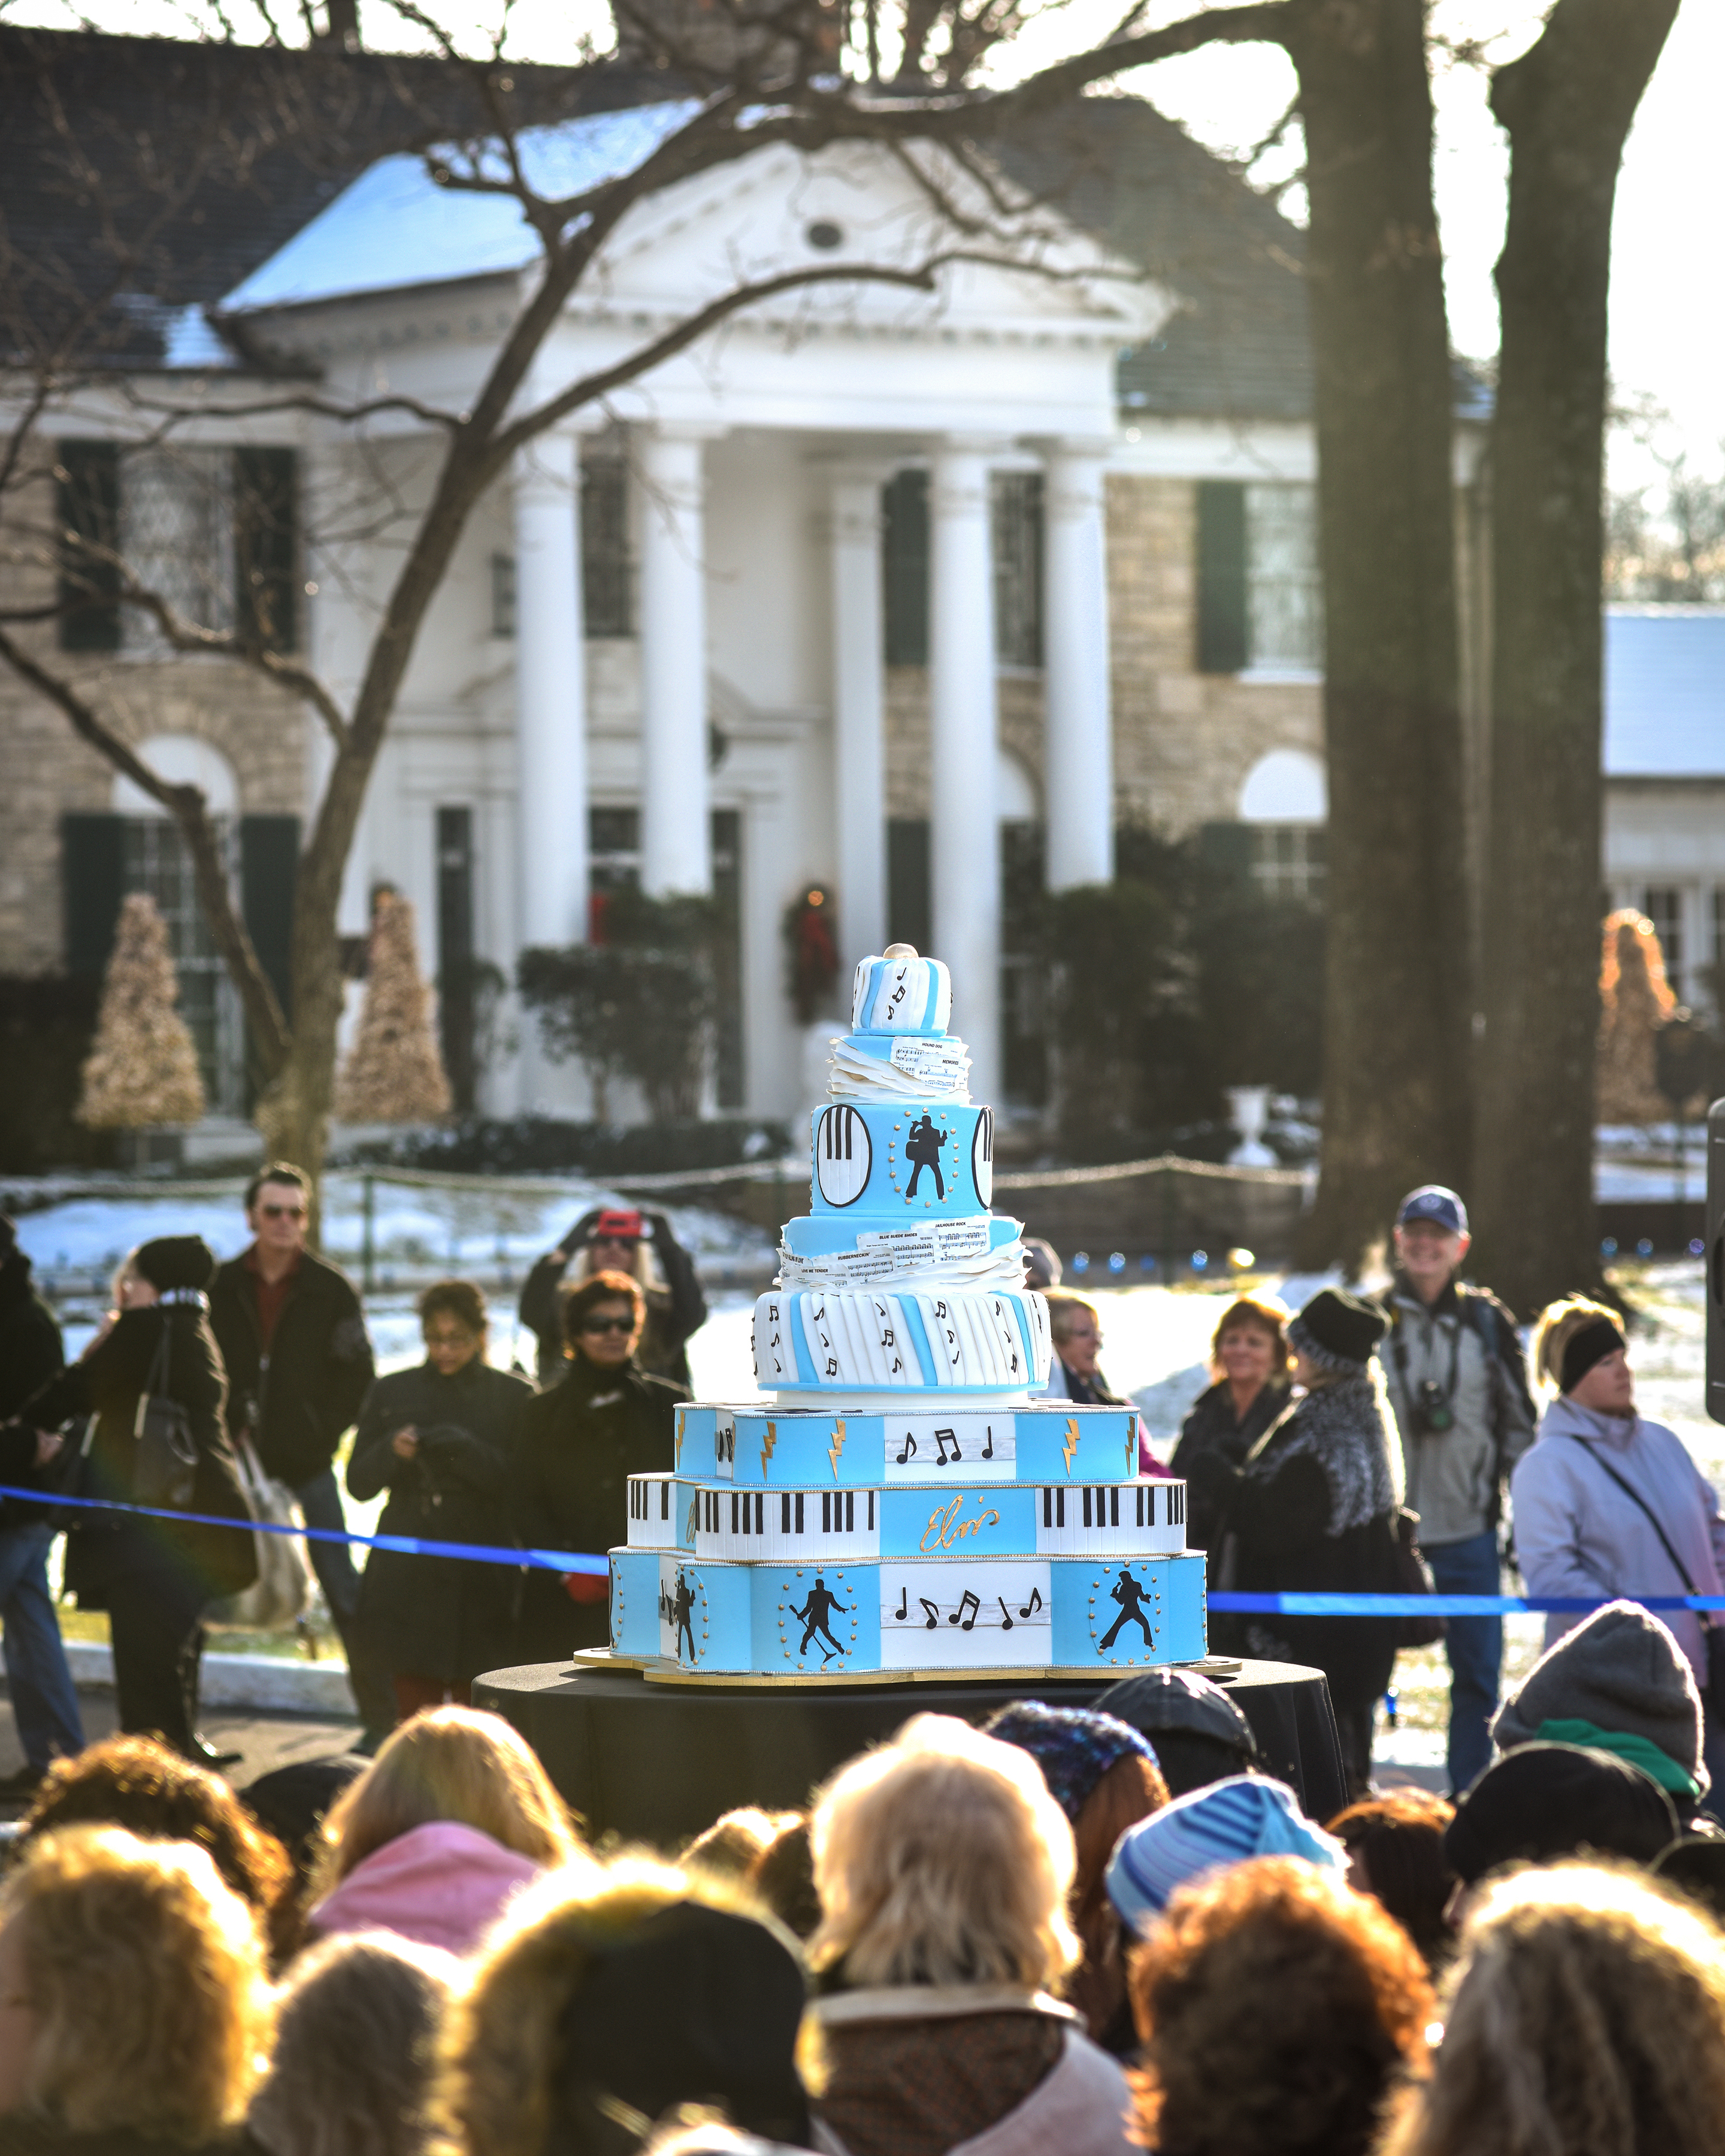 Graceland Celebrates Elvis Birthday With Special Events